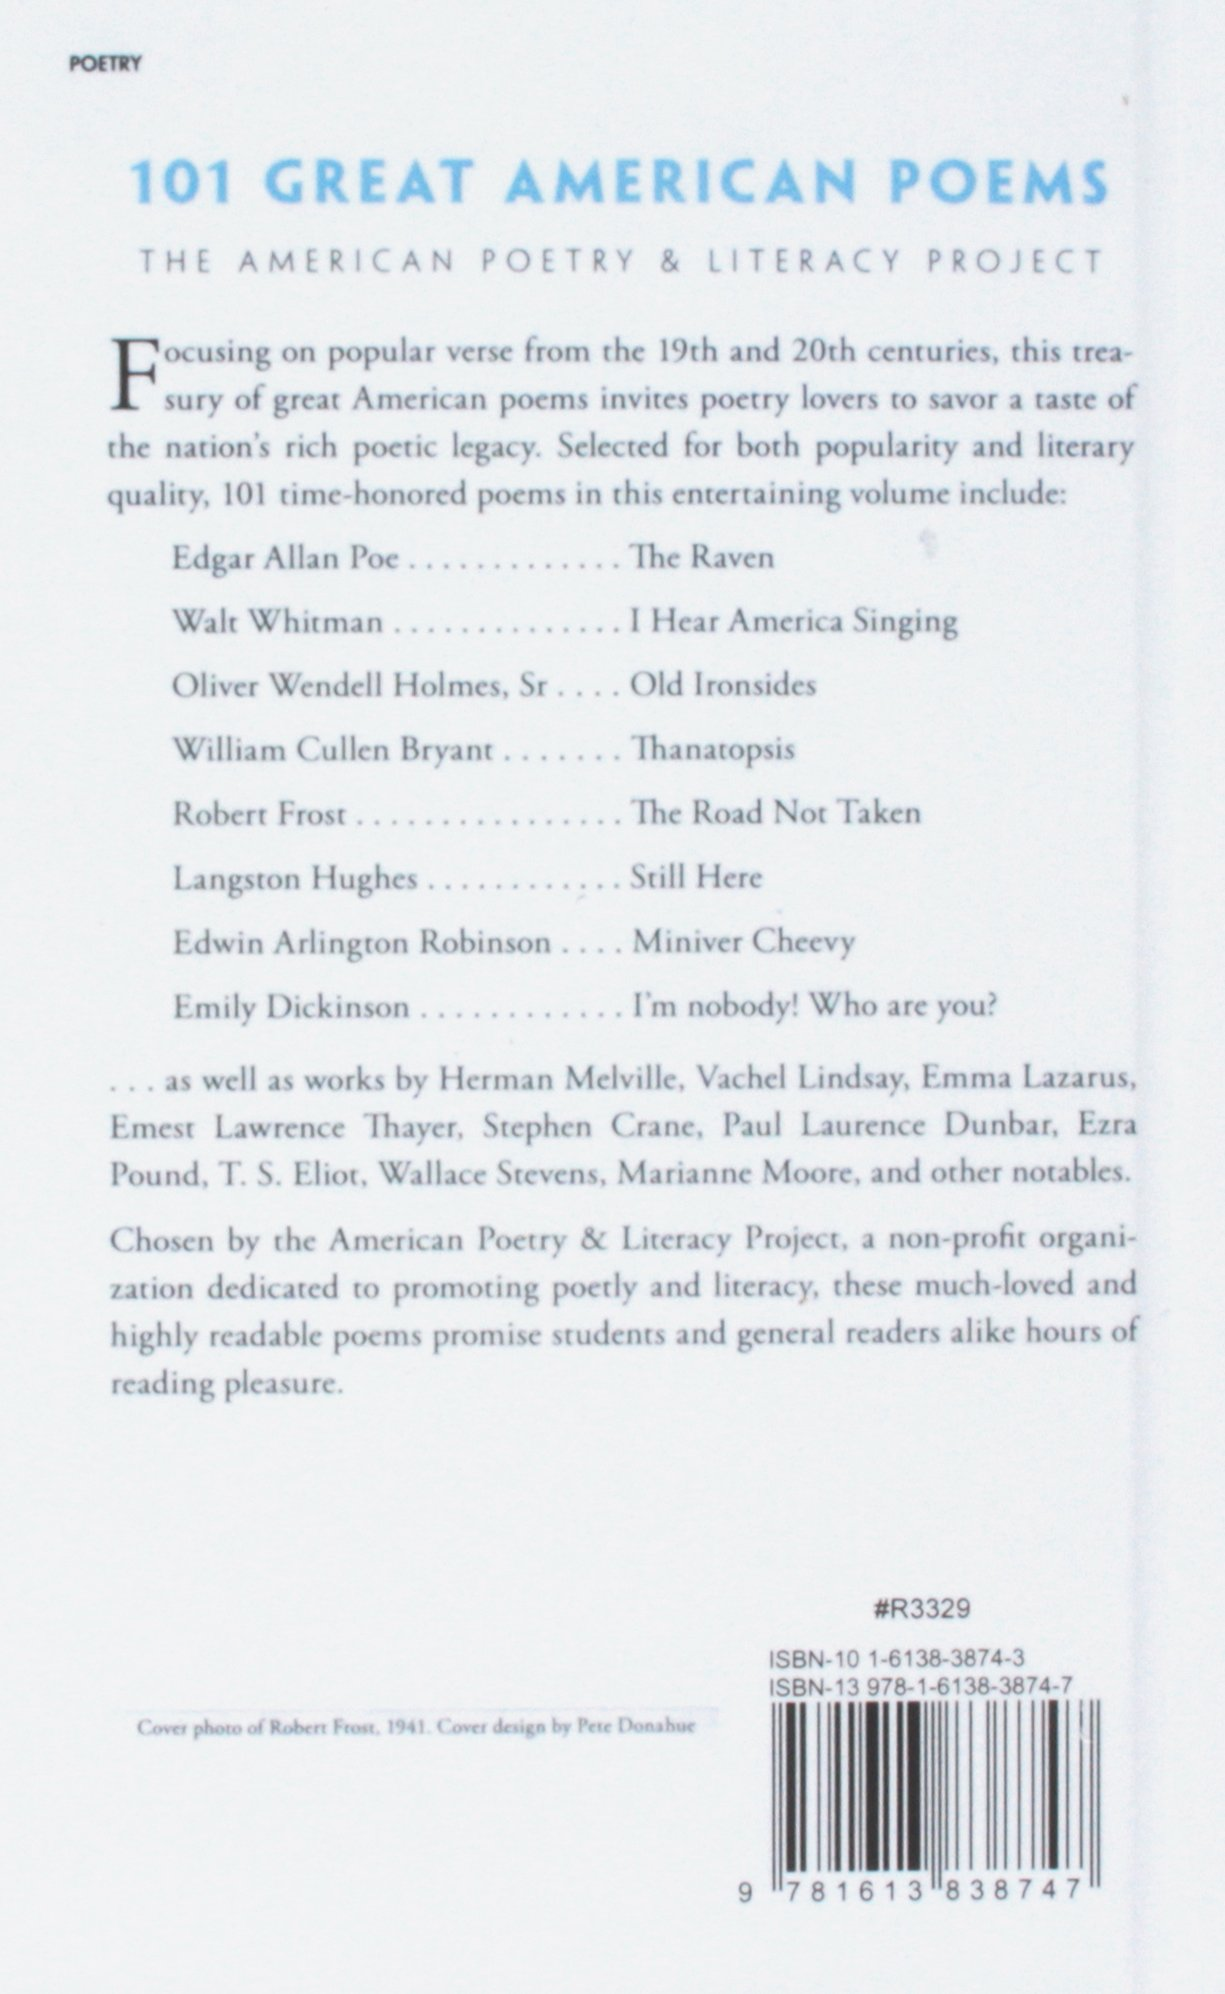 Buy 101 Great American Poems (Dover Thrift Editions) Book Online at Low  Prices in India | 101 Great American Poems (Dover Thrift Editions) Reviews  & Ratings ...